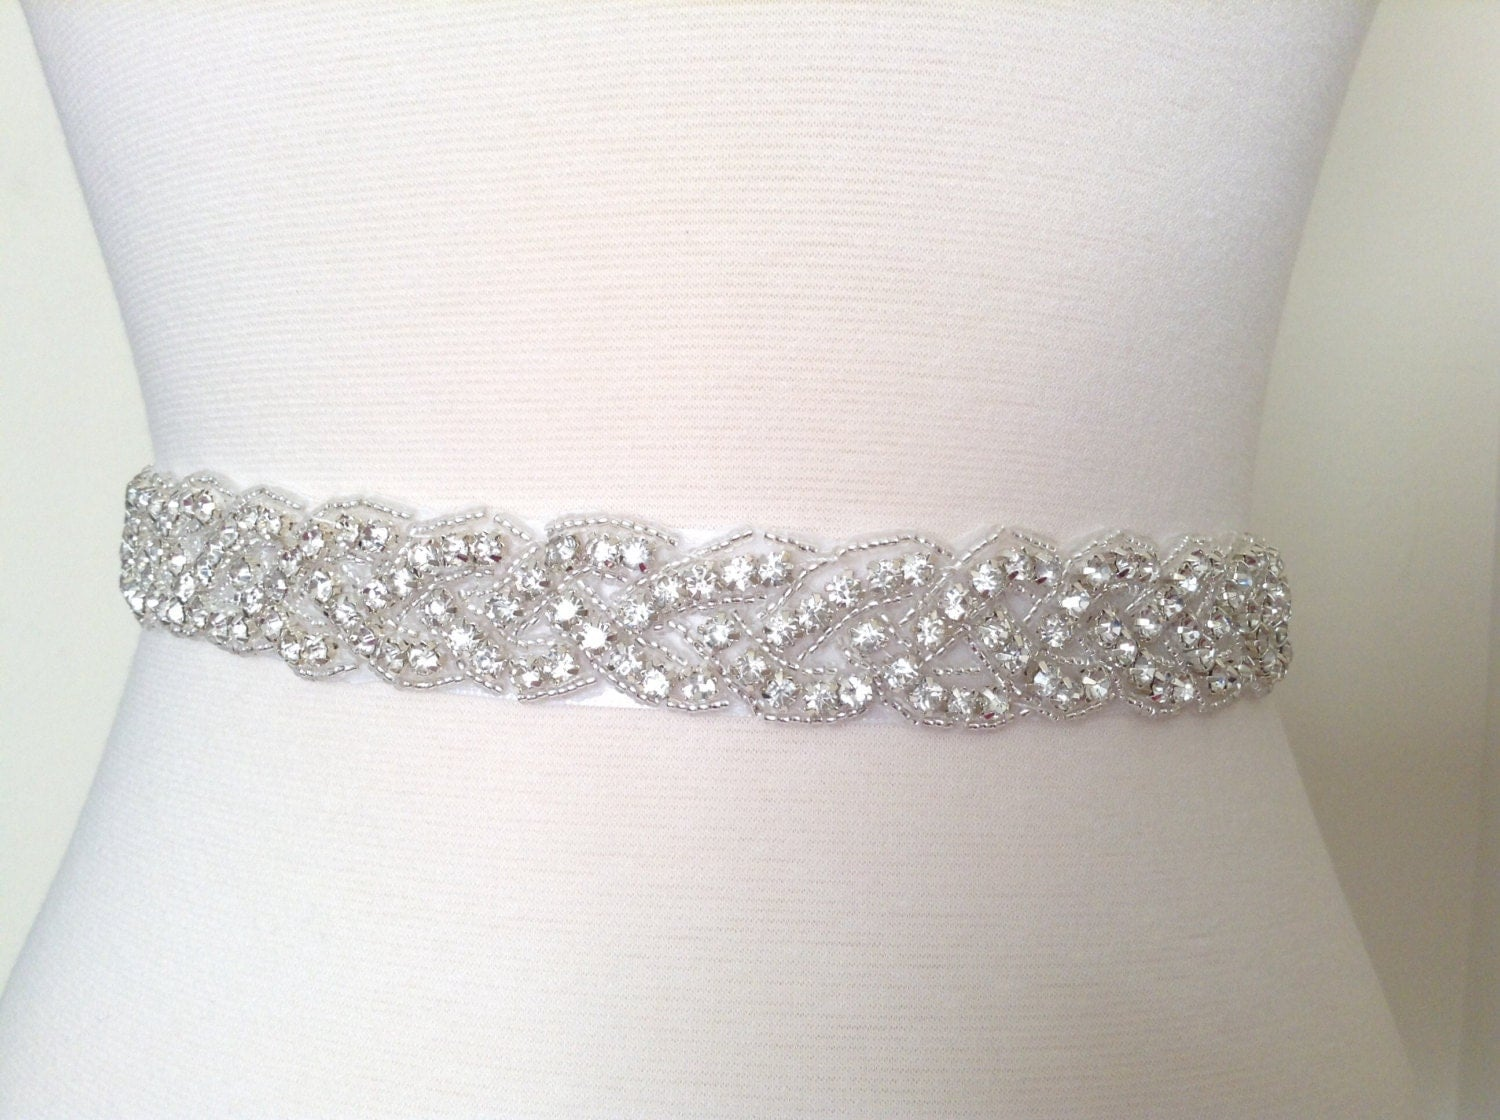 Bridal Sash Bridal Belt Wedding Dress Sash Rhinestone Sash